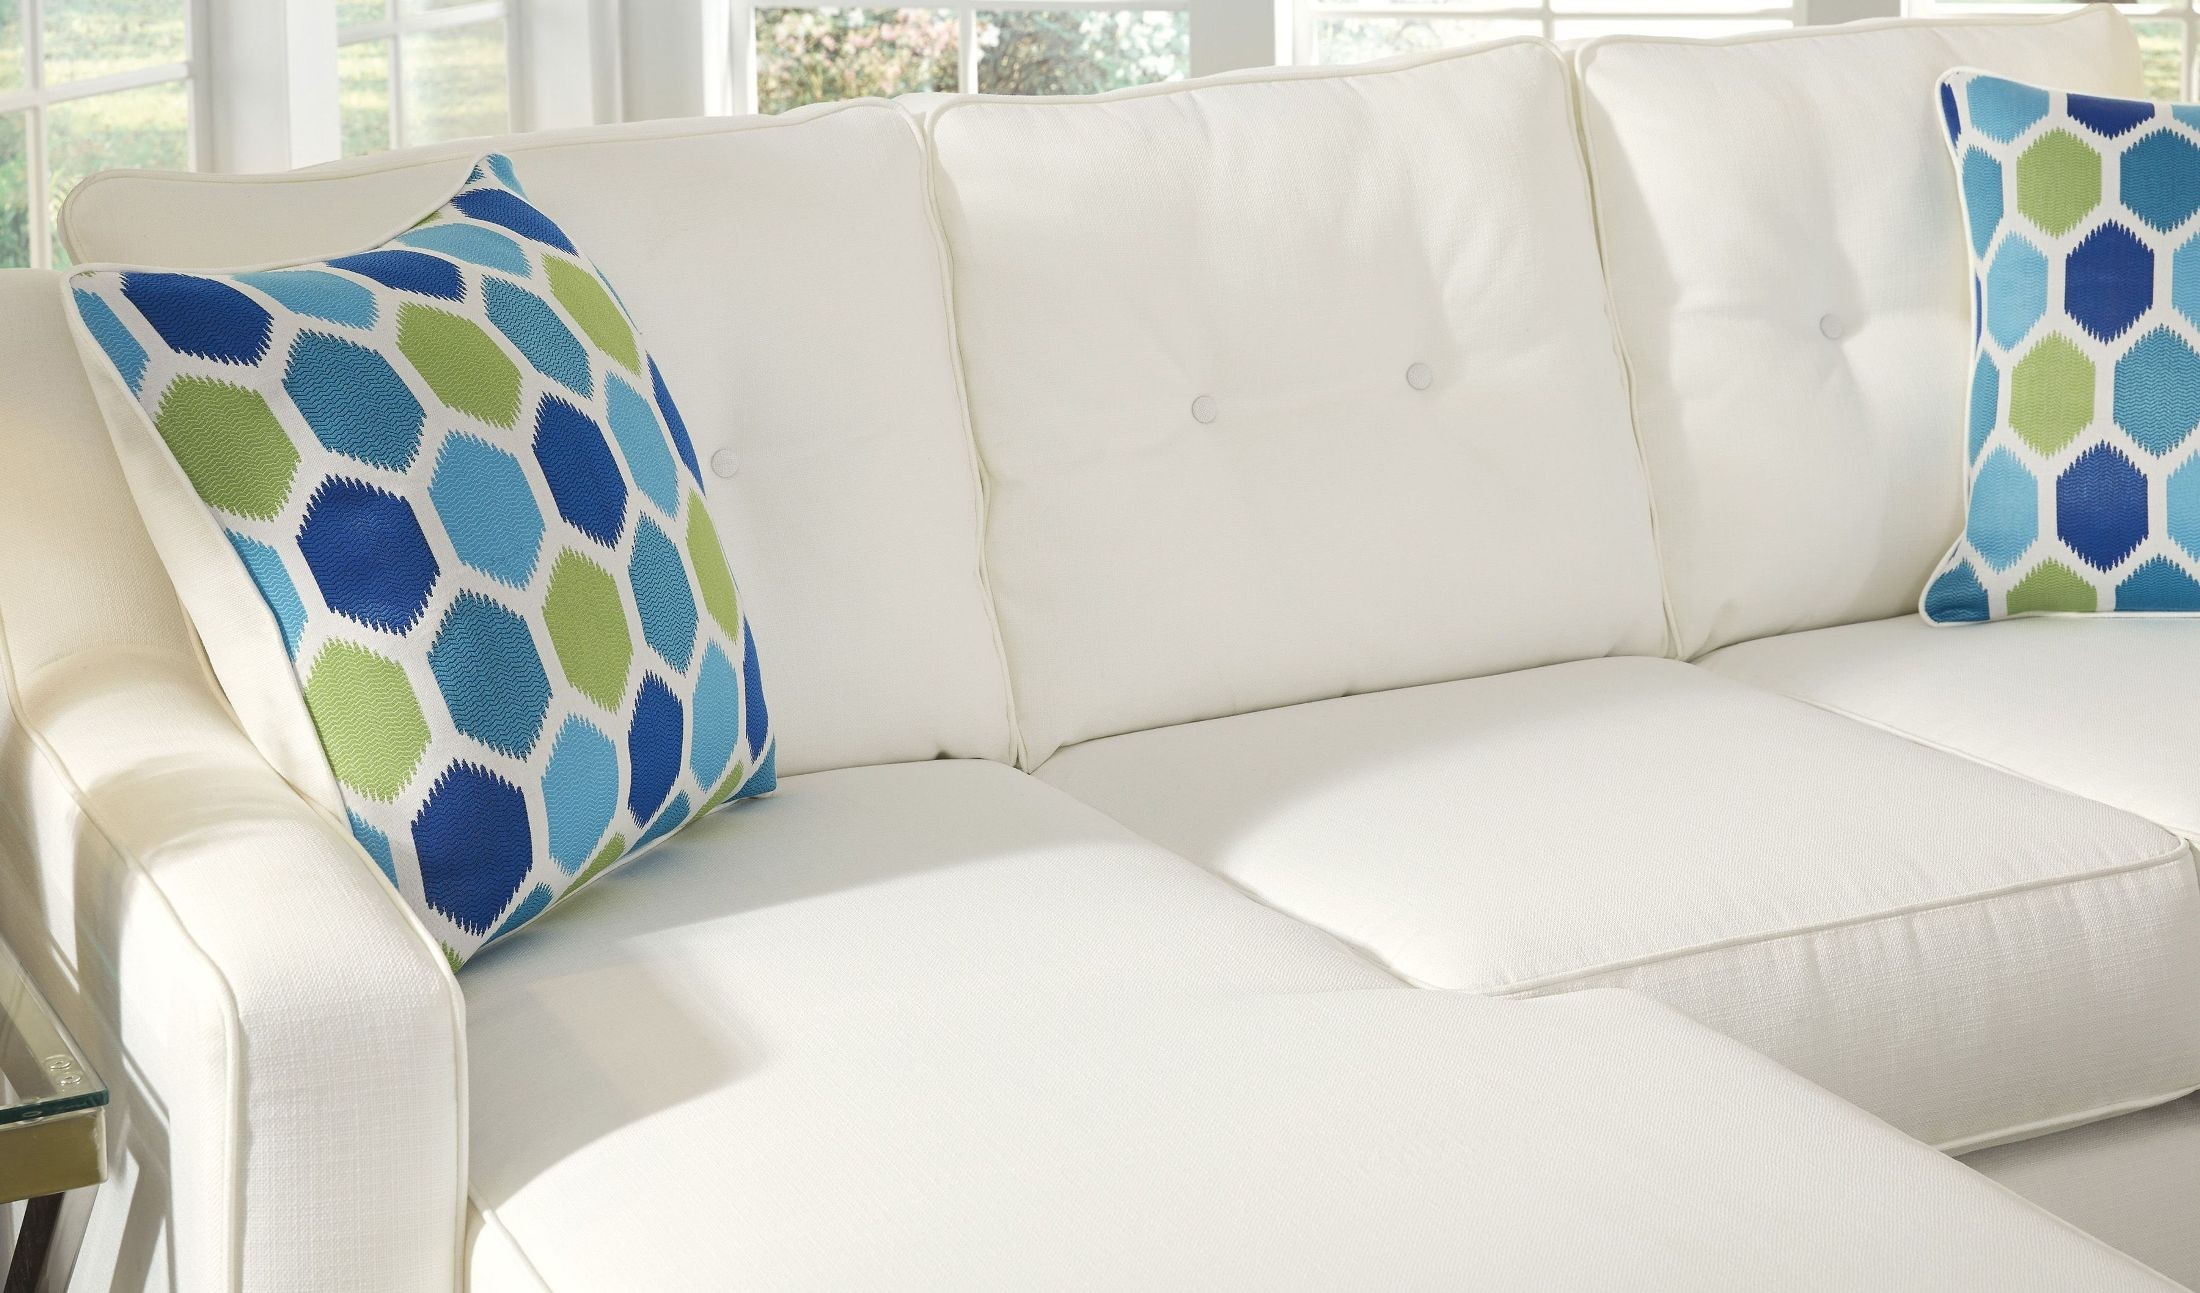 Aldie Nuvella White Sofa Chaise From Ashley Coleman